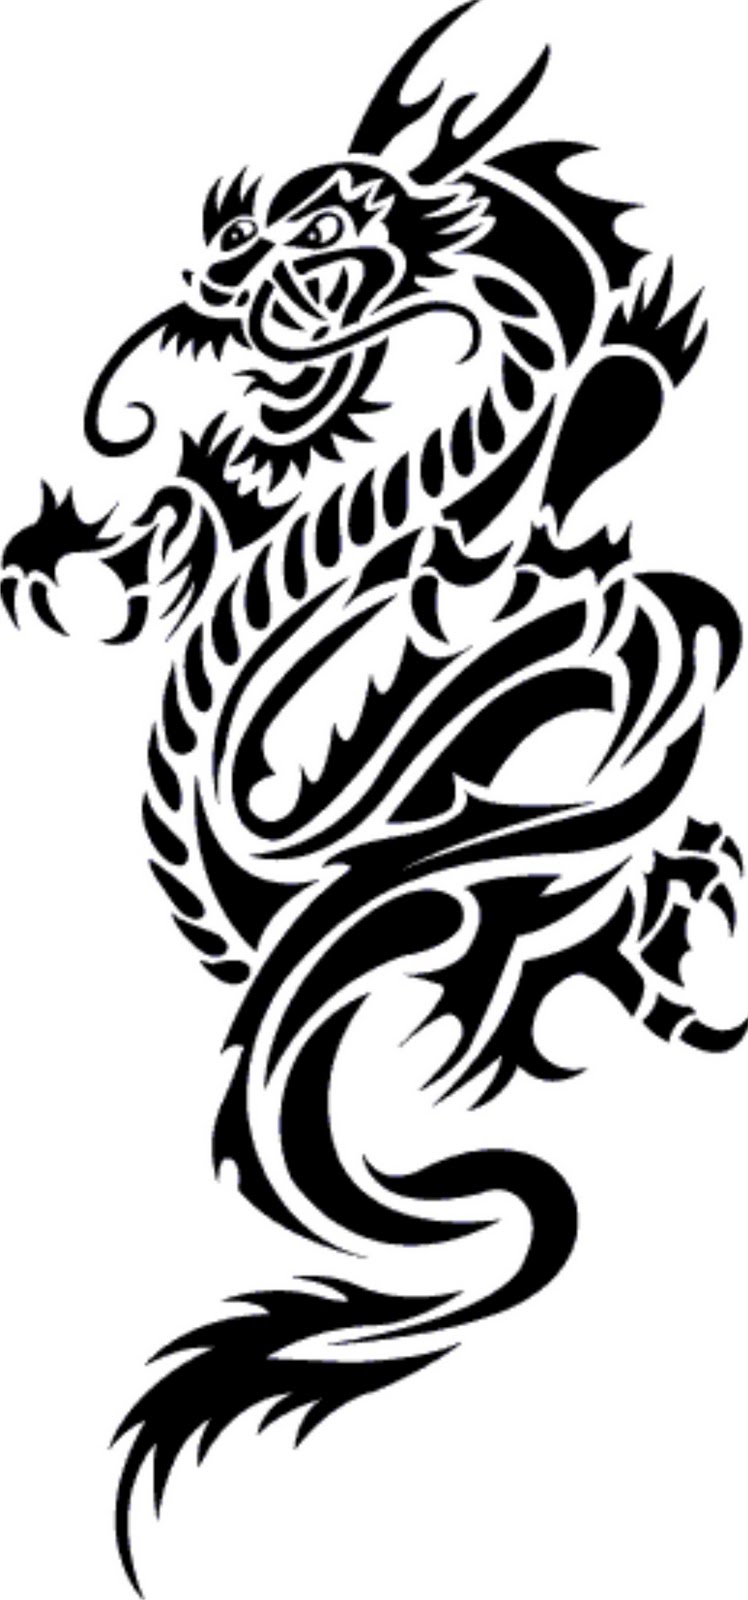 dragon tribal tattoo clipart best. Black Bedroom Furniture Sets. Home Design Ideas